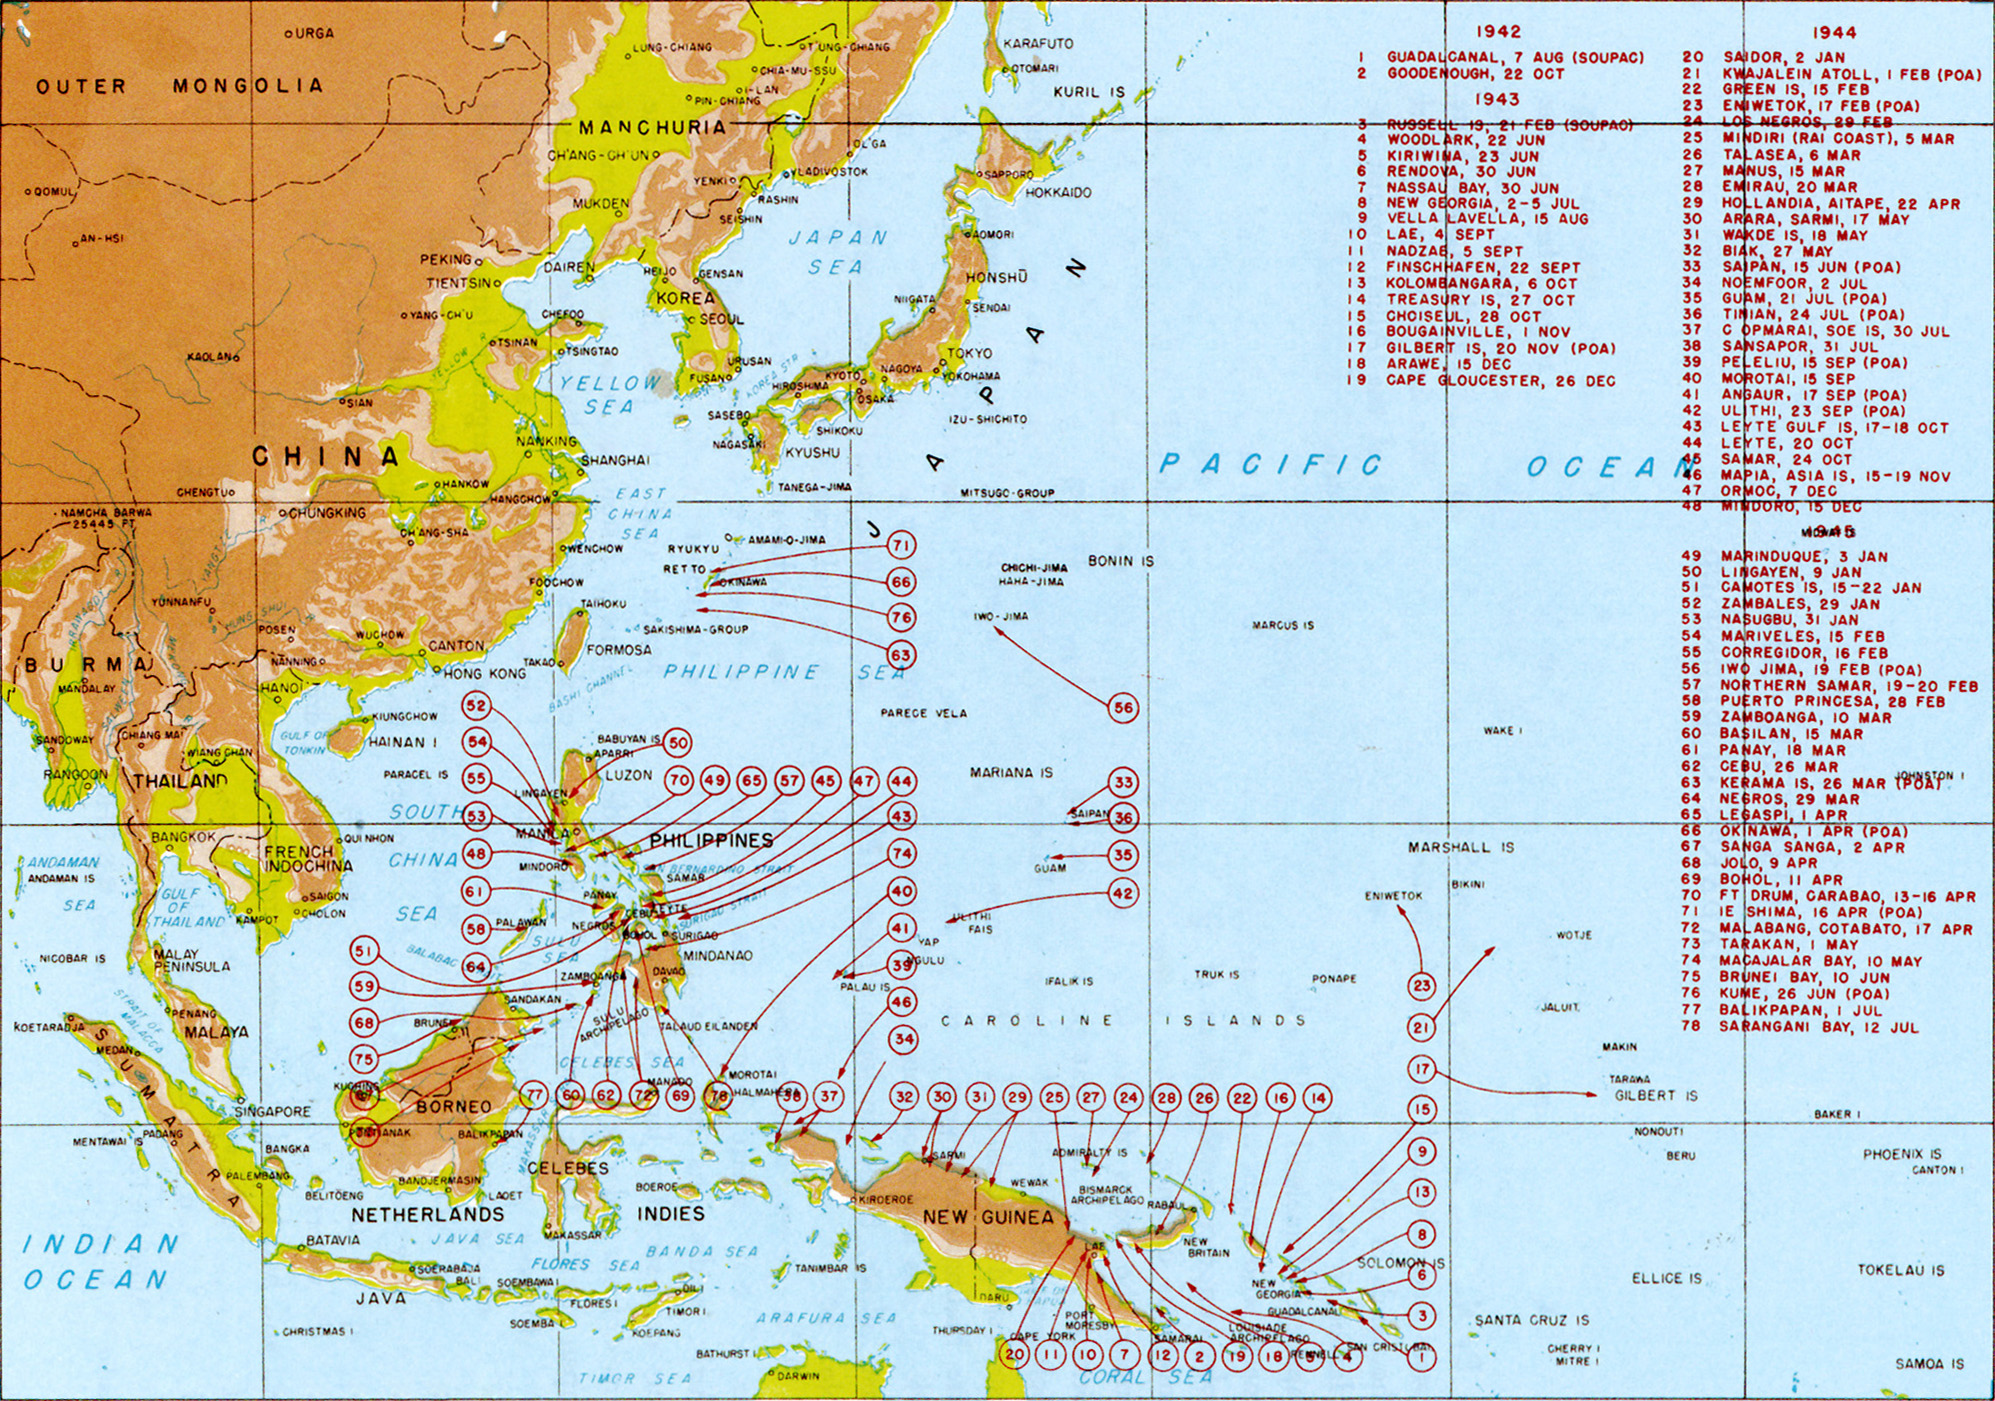 World War II in the Pacific 1942-1945